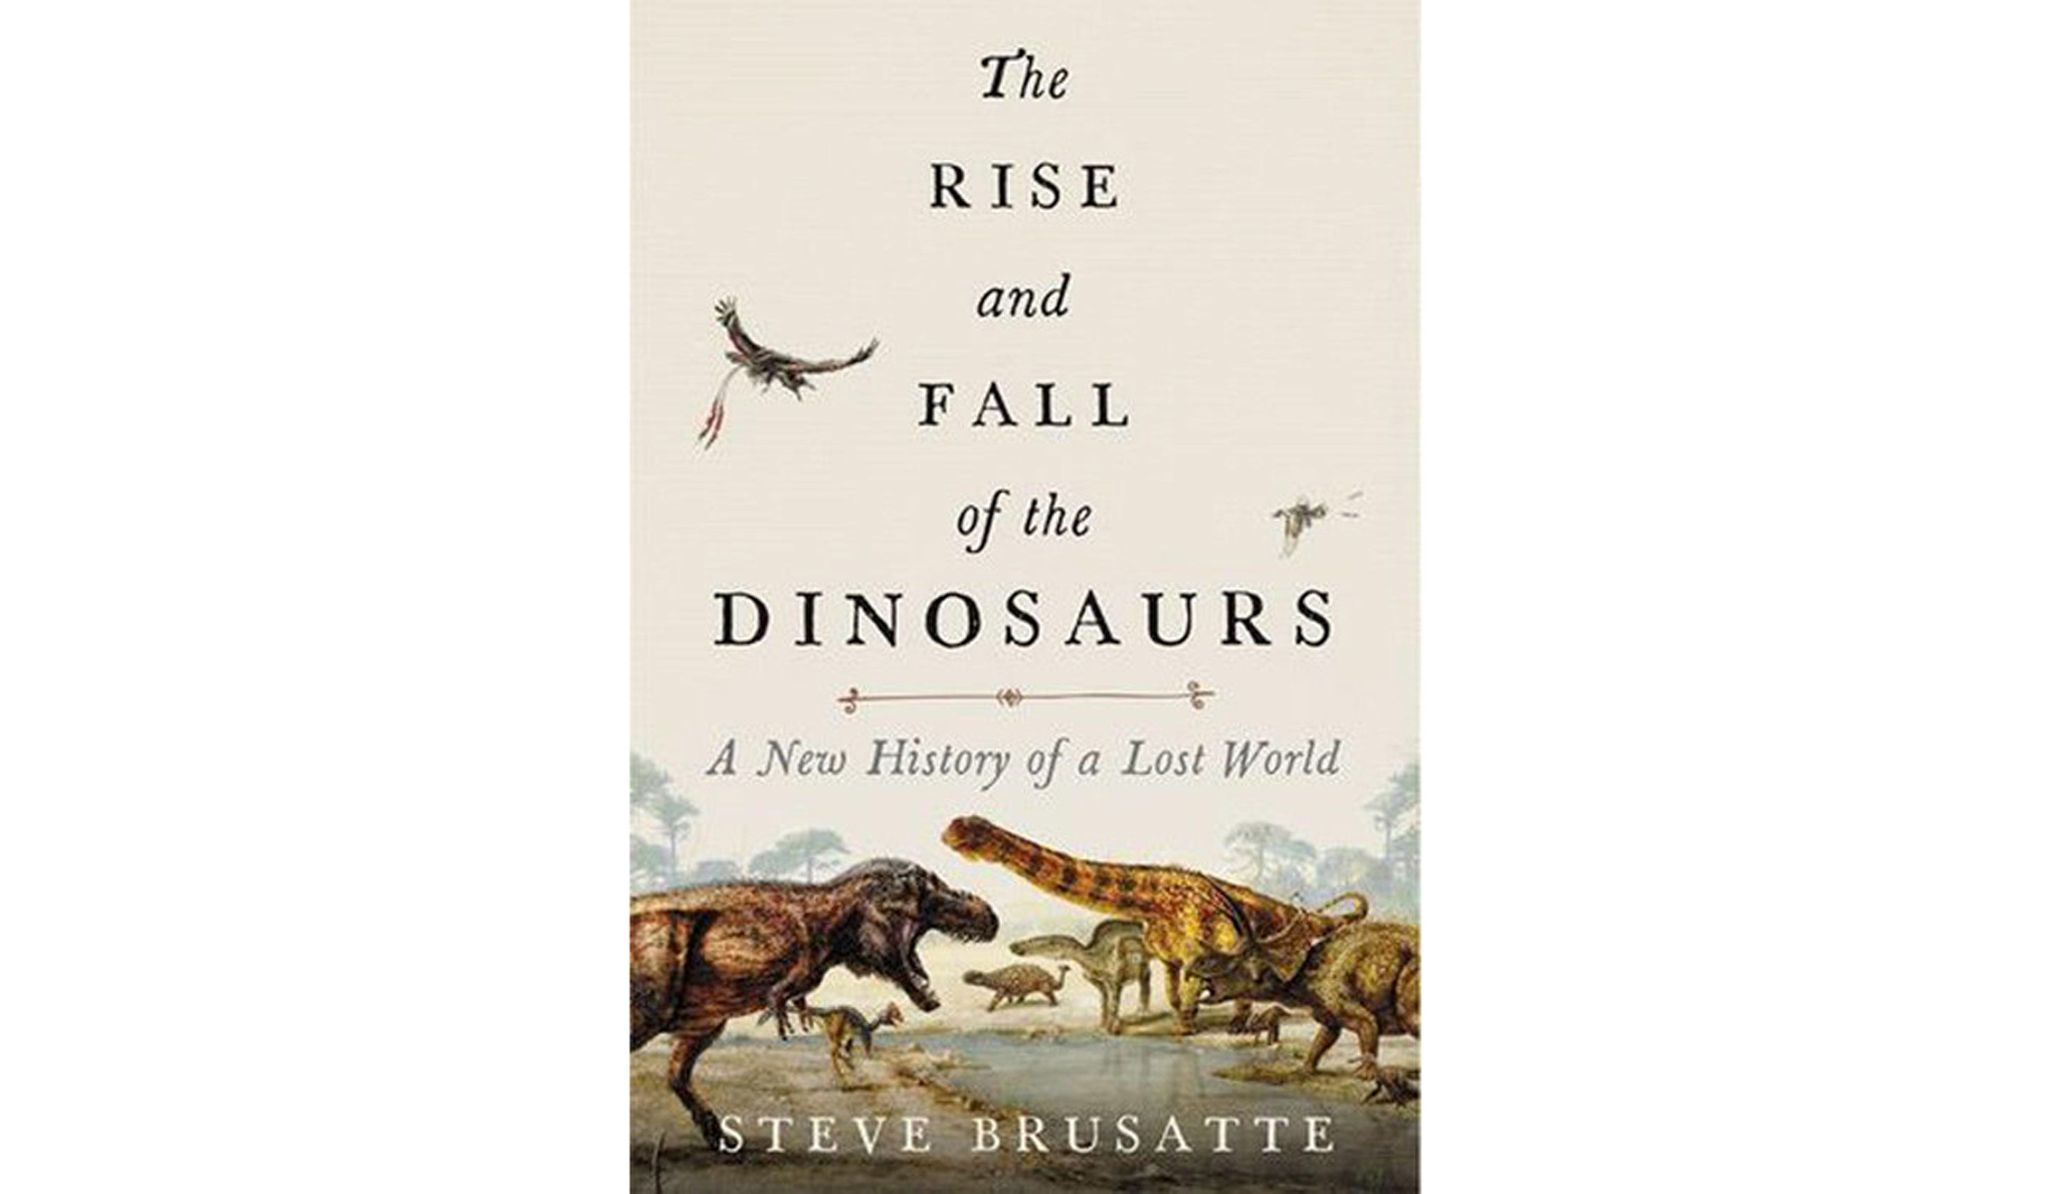 BOOK REVIEW: 'The Rise and Fall of the Dinosaurs' by Steve Brusatte